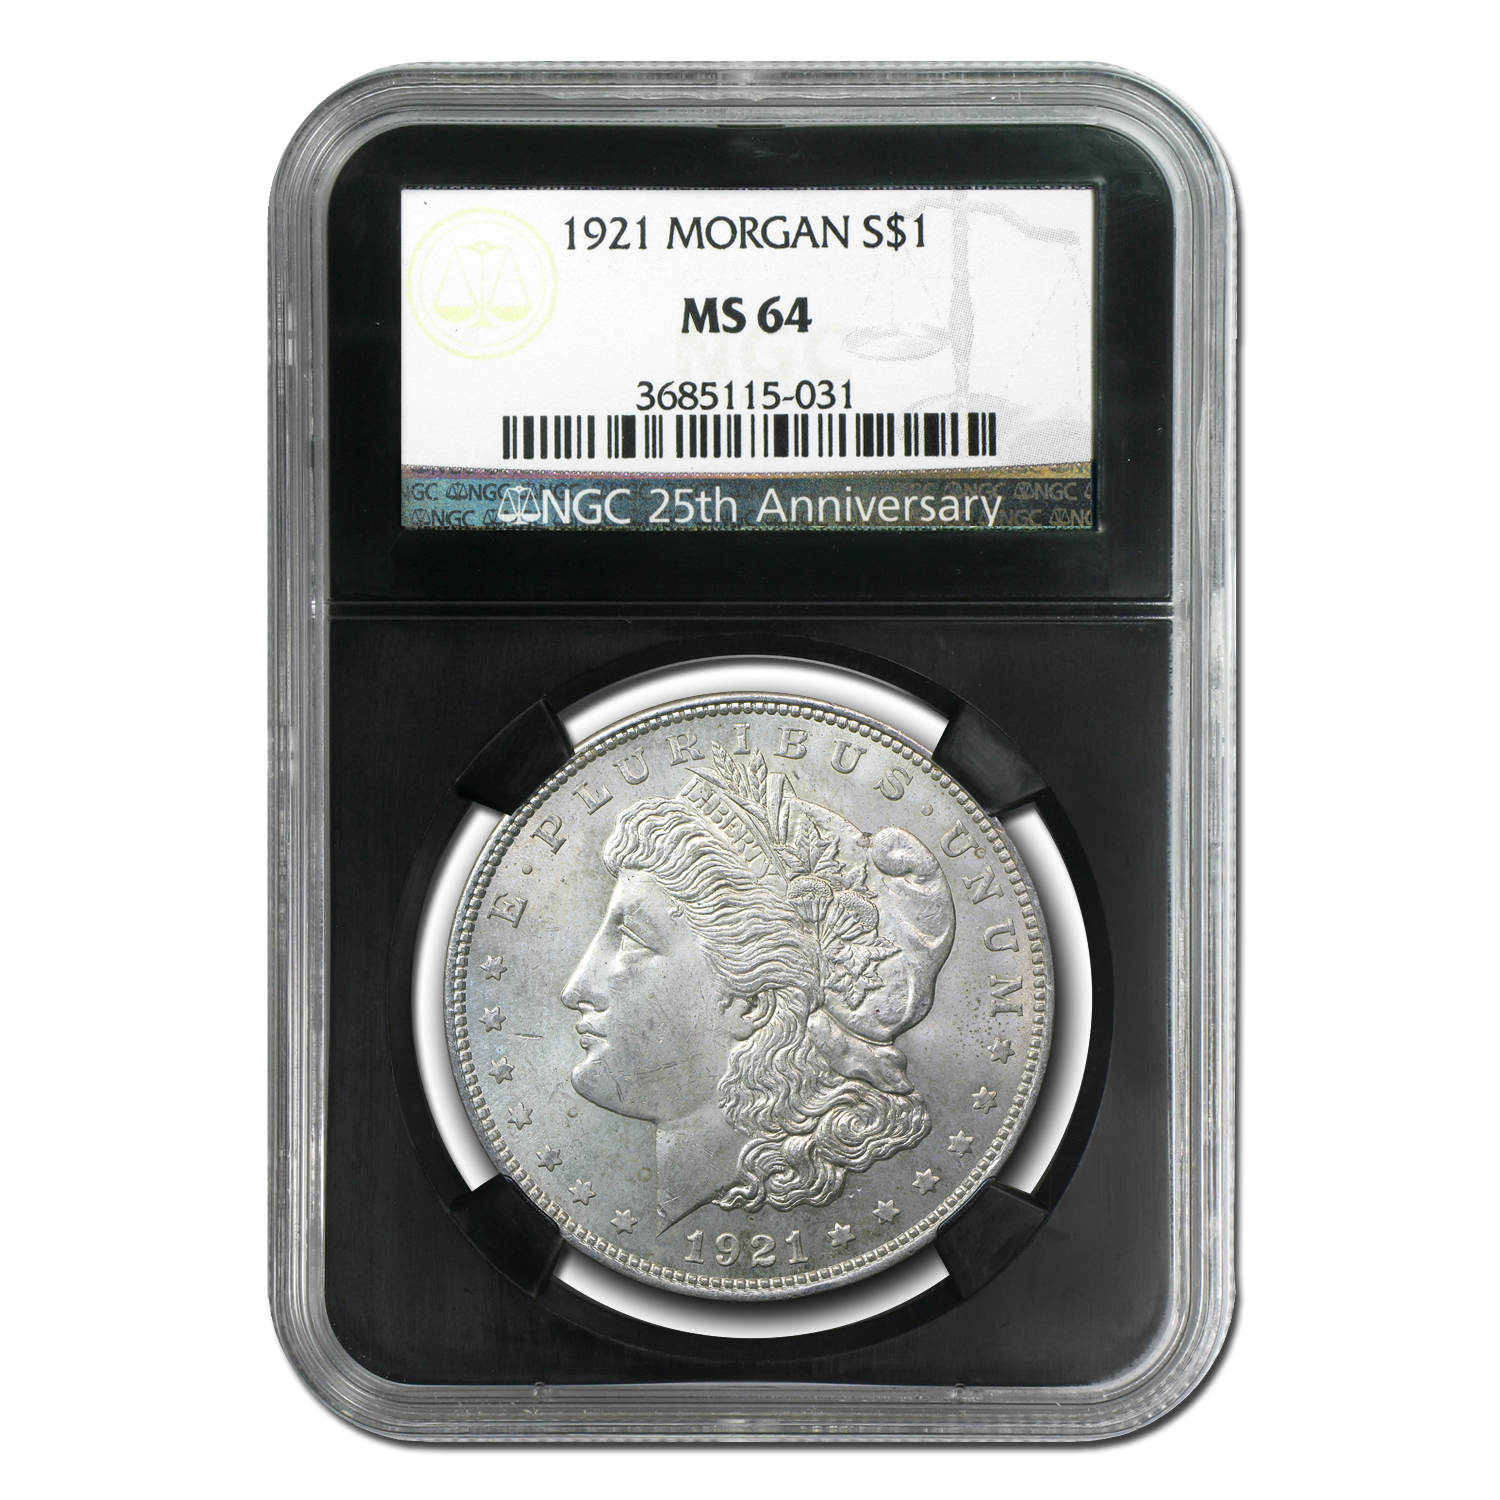 1921 Morgan Dollar - MS-64 NGC Black Holder - 25th Anniversary